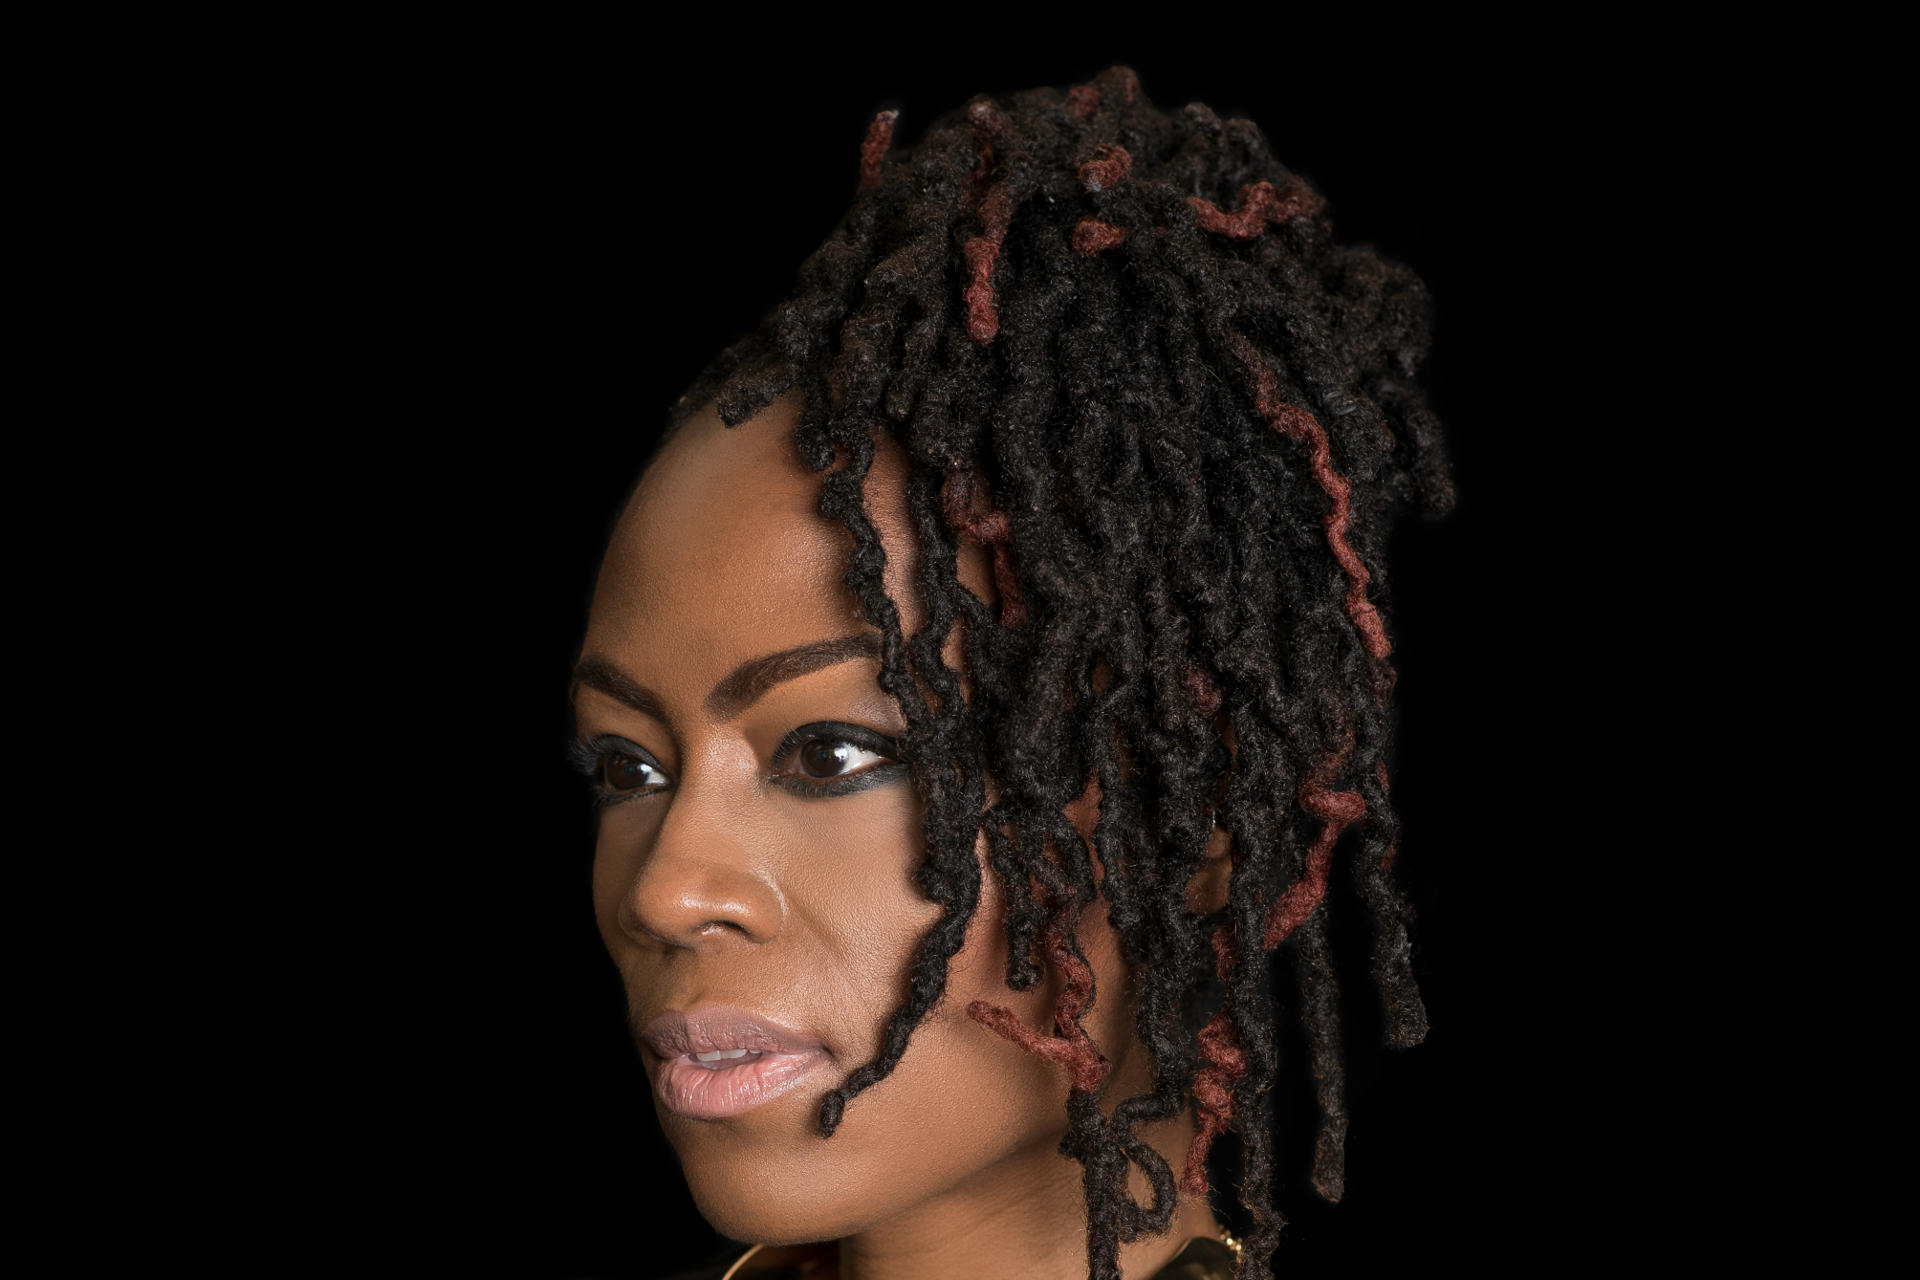 Woman with dreadlocks with highlight colors, gathered in ponytail